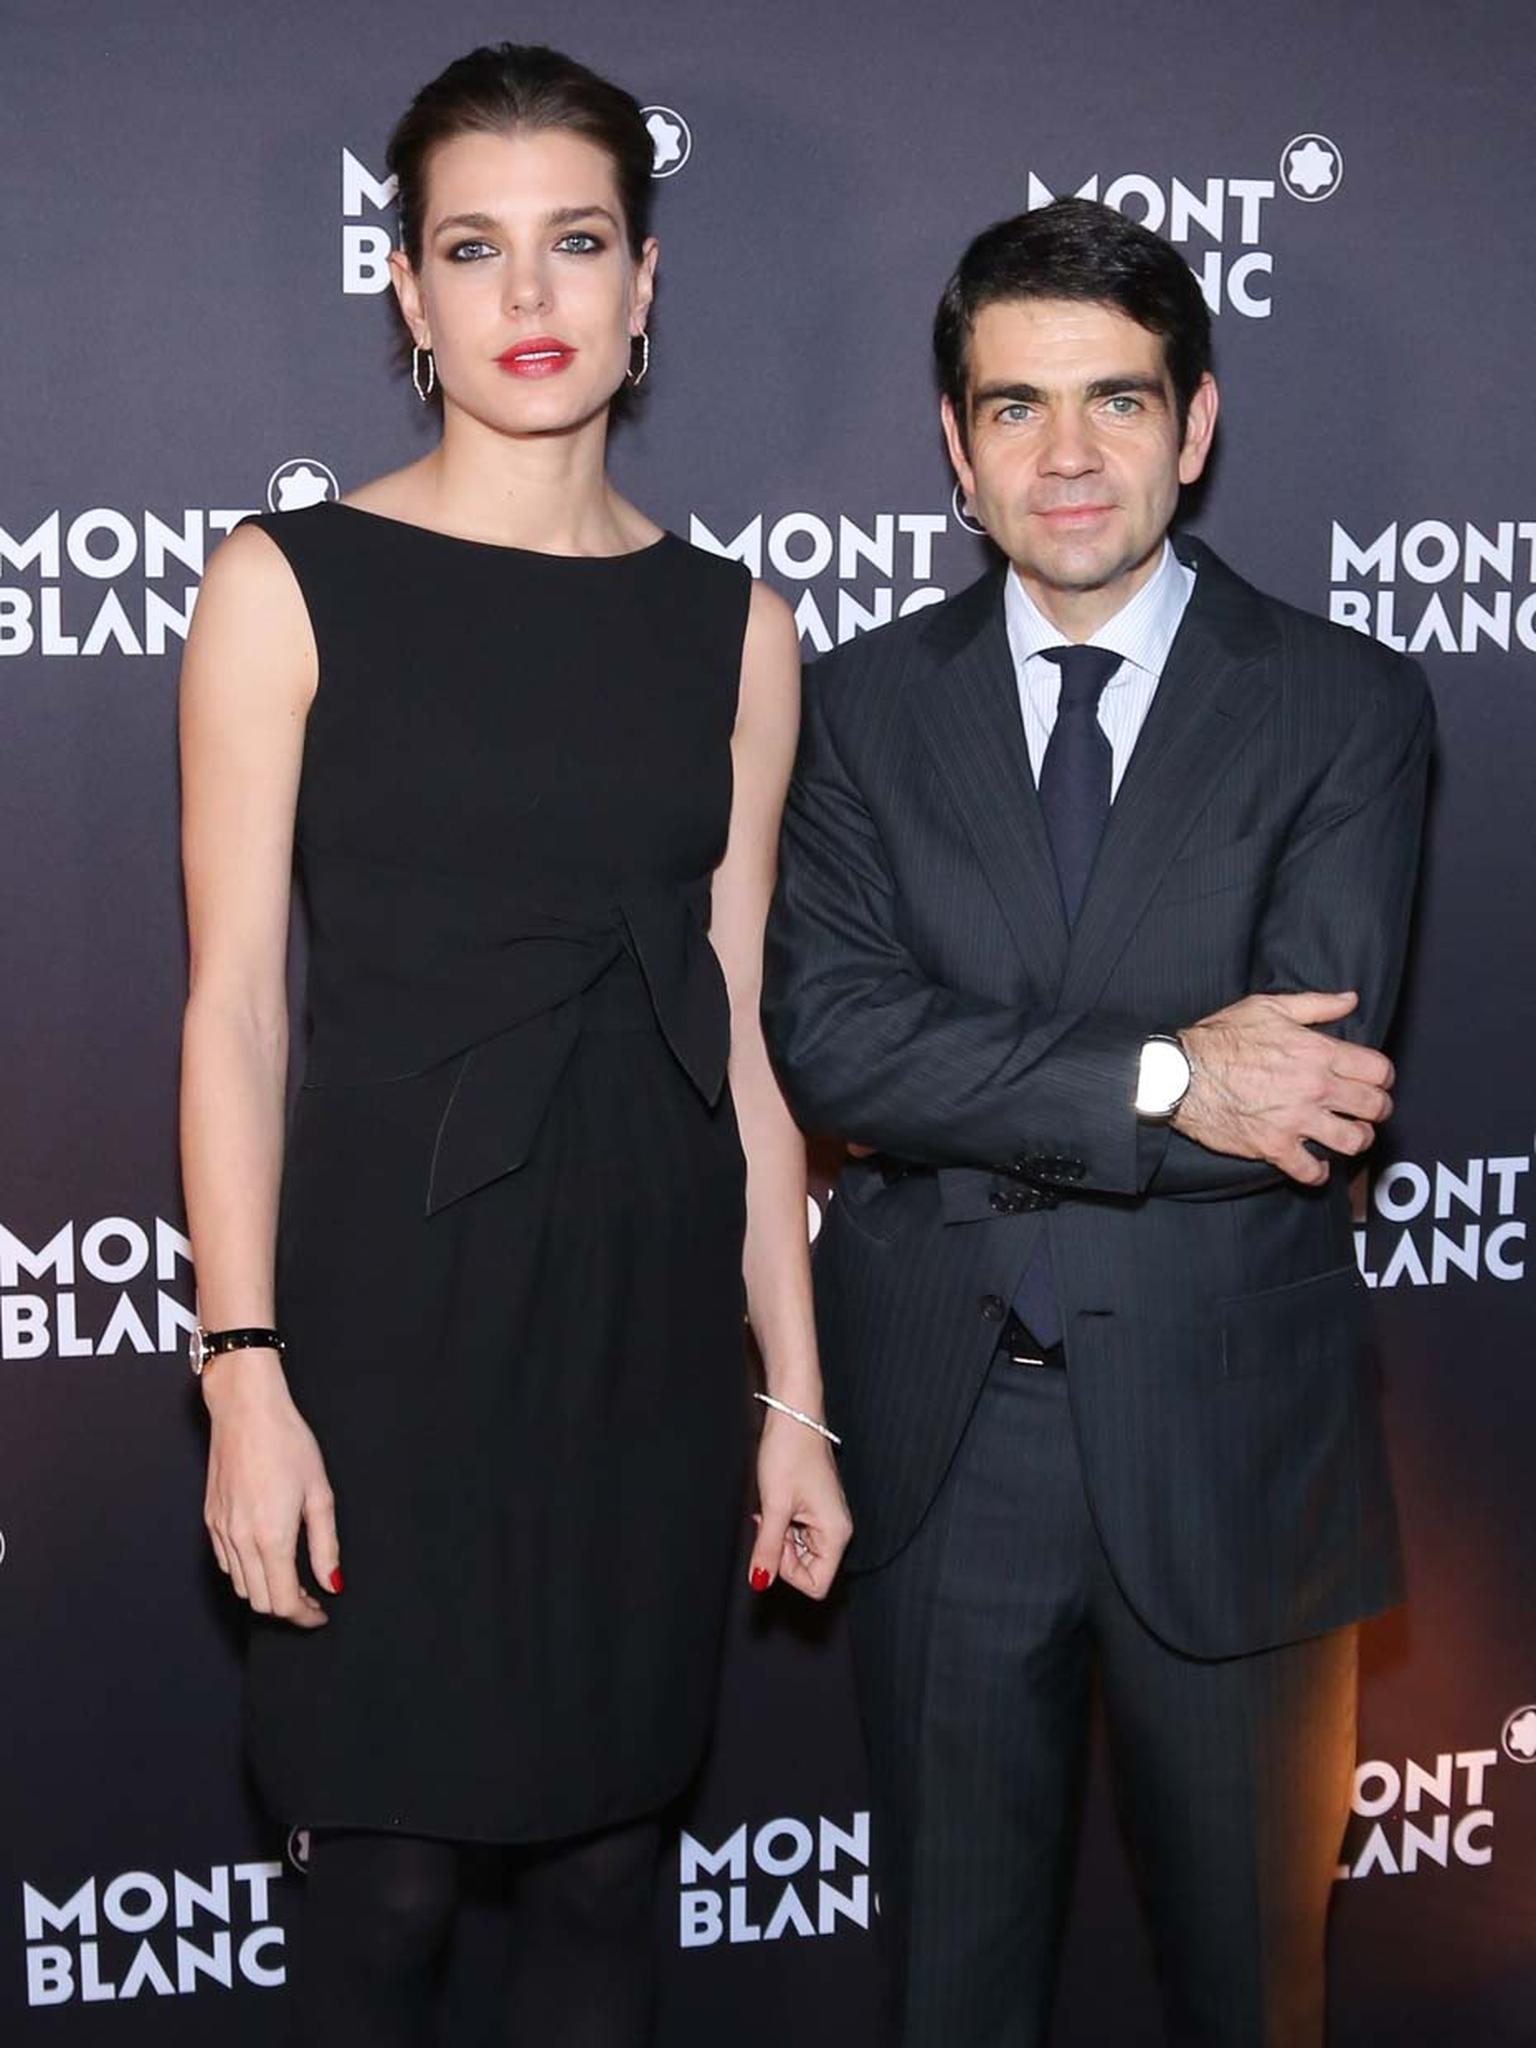 Charlotte Casiraghi with Montblanc CEO Jerôme Lambert at the SIHH watch salon.